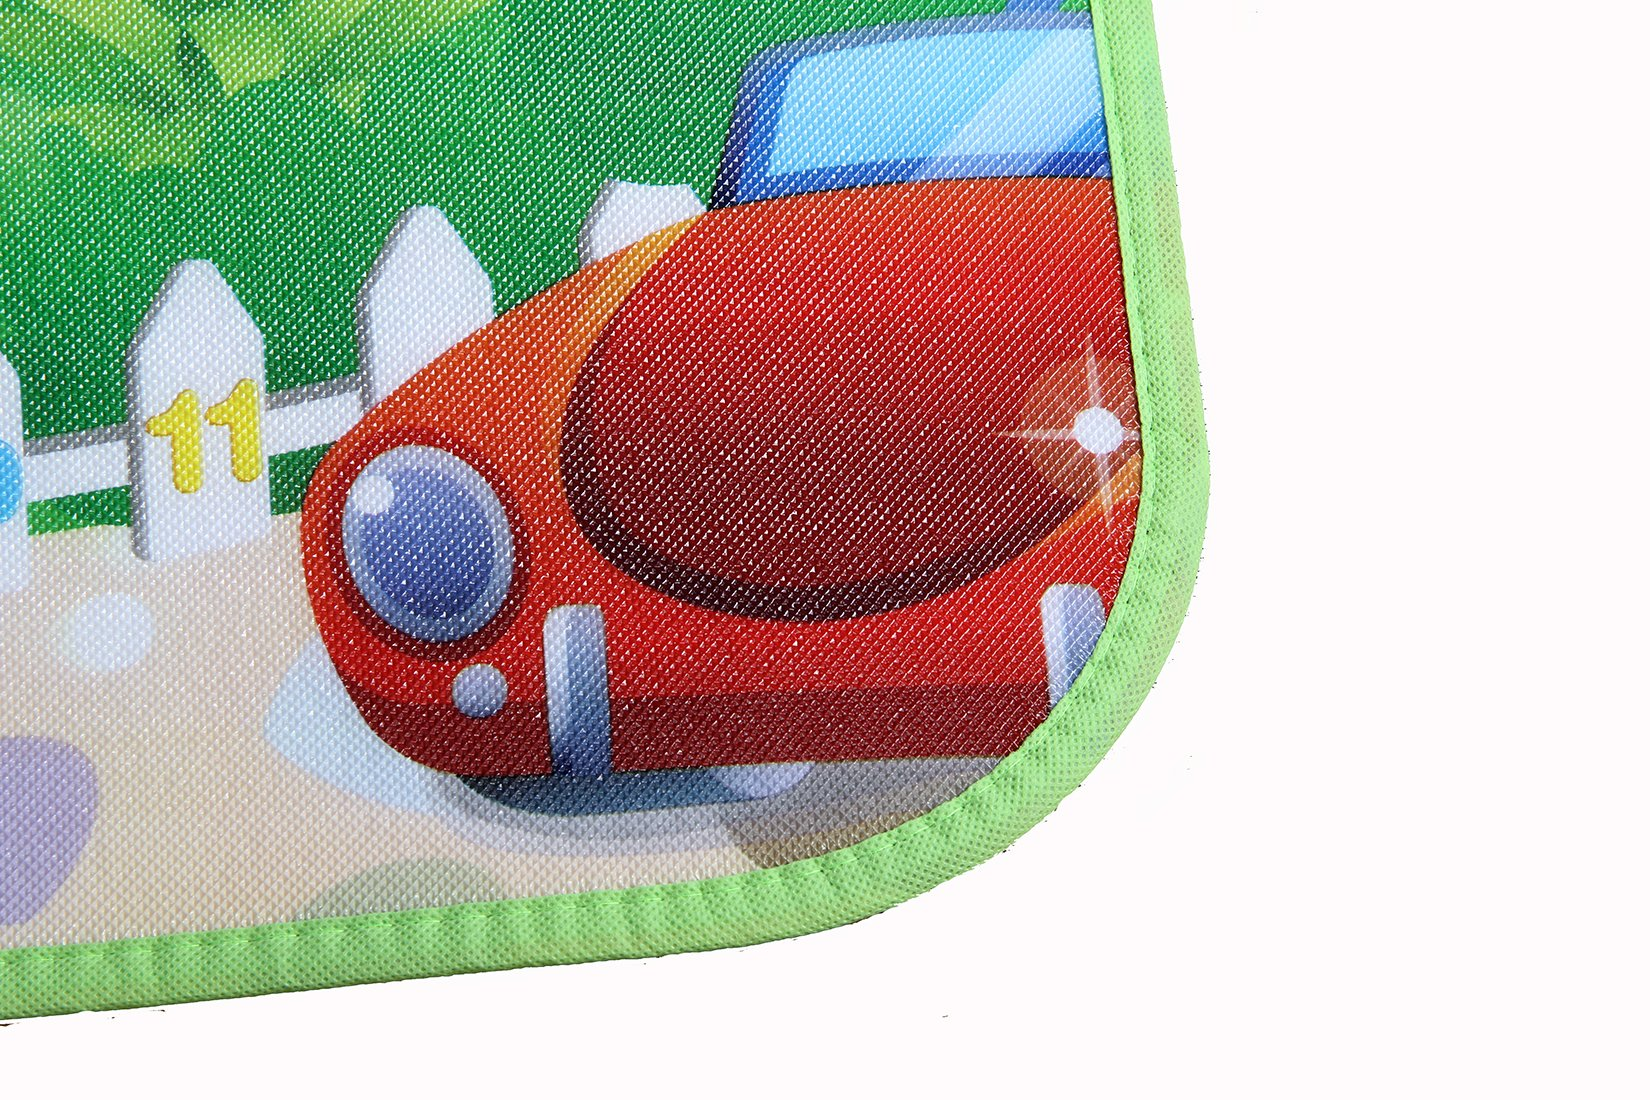 Garwarm 7159inches Extra Large Baby Crawling Mat Baby Play Mat Game Mat,0.2-Inch Thick (US STORE) by Garwarm (Image #6)